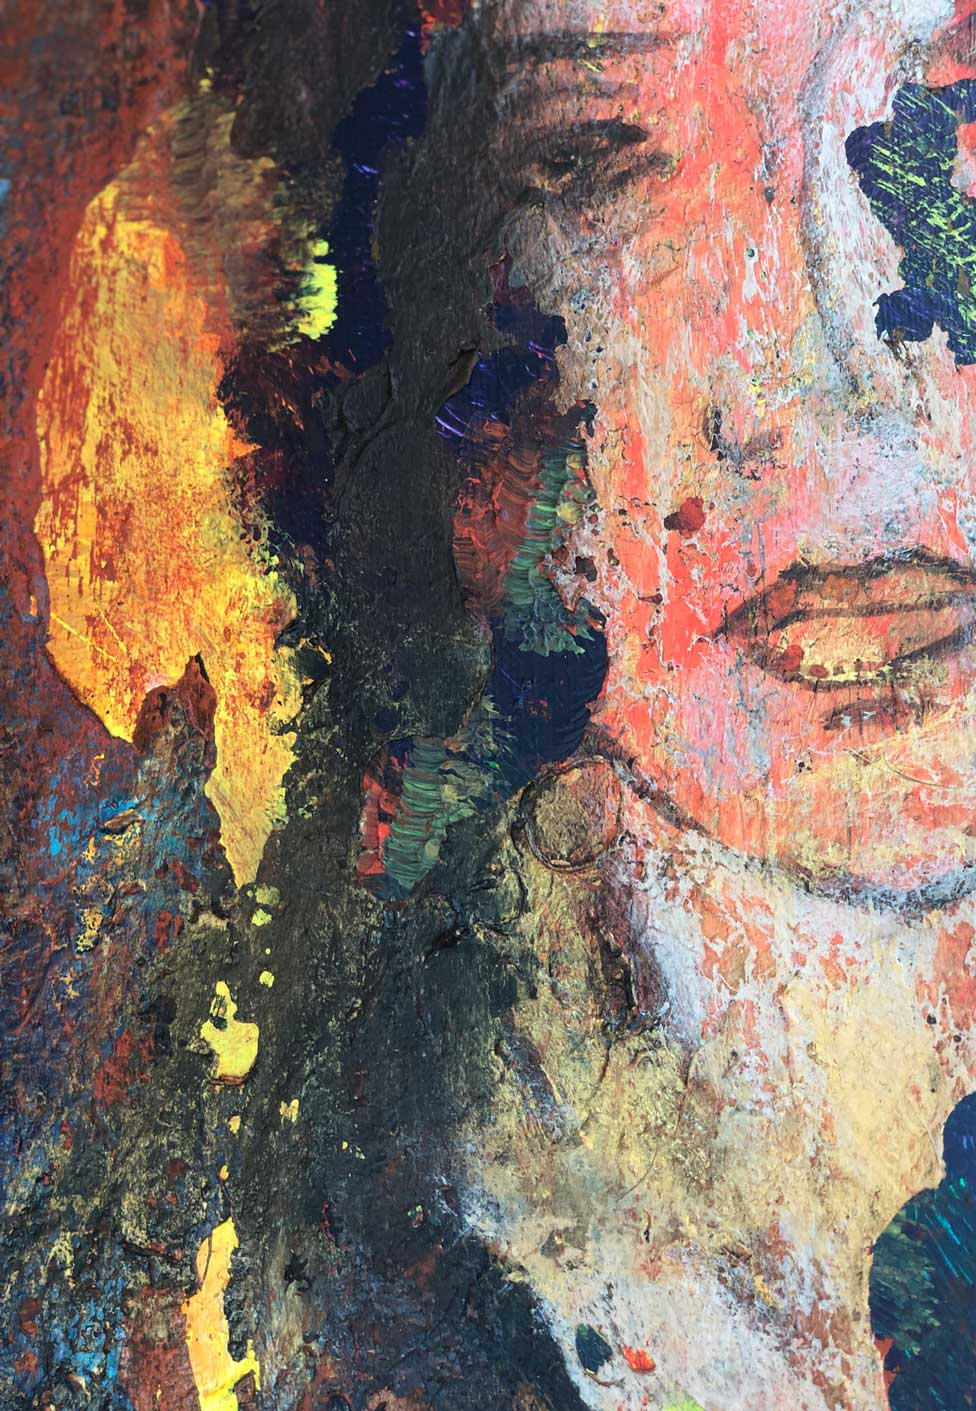 """Close-up 1 of """"In the Garden,"""" painting by Tamara Anna Pawlak"""